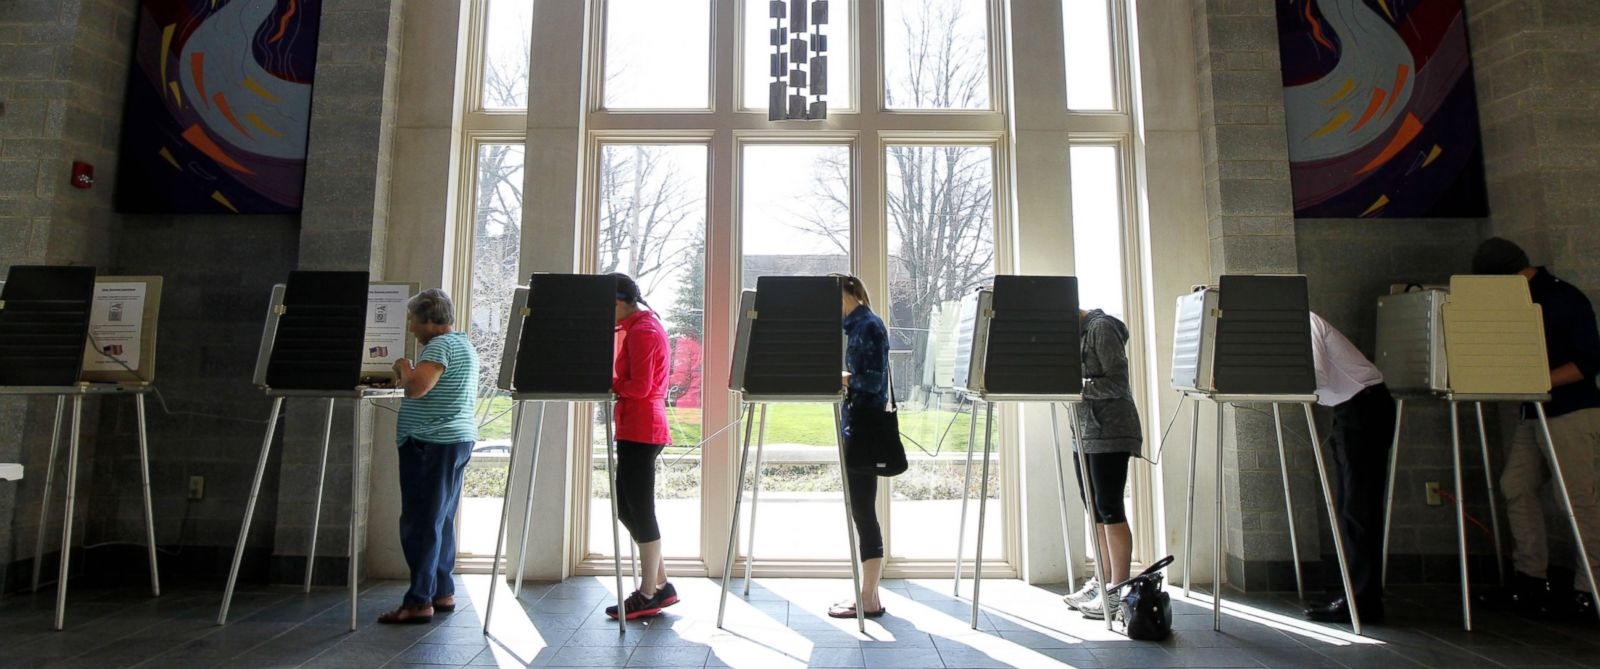 PHOTO: Ohio voters go to the polls for the Ohio primary at the Episcopal Church of the Redeemer, March 15, 2016, in Cincinnati, Ohio.